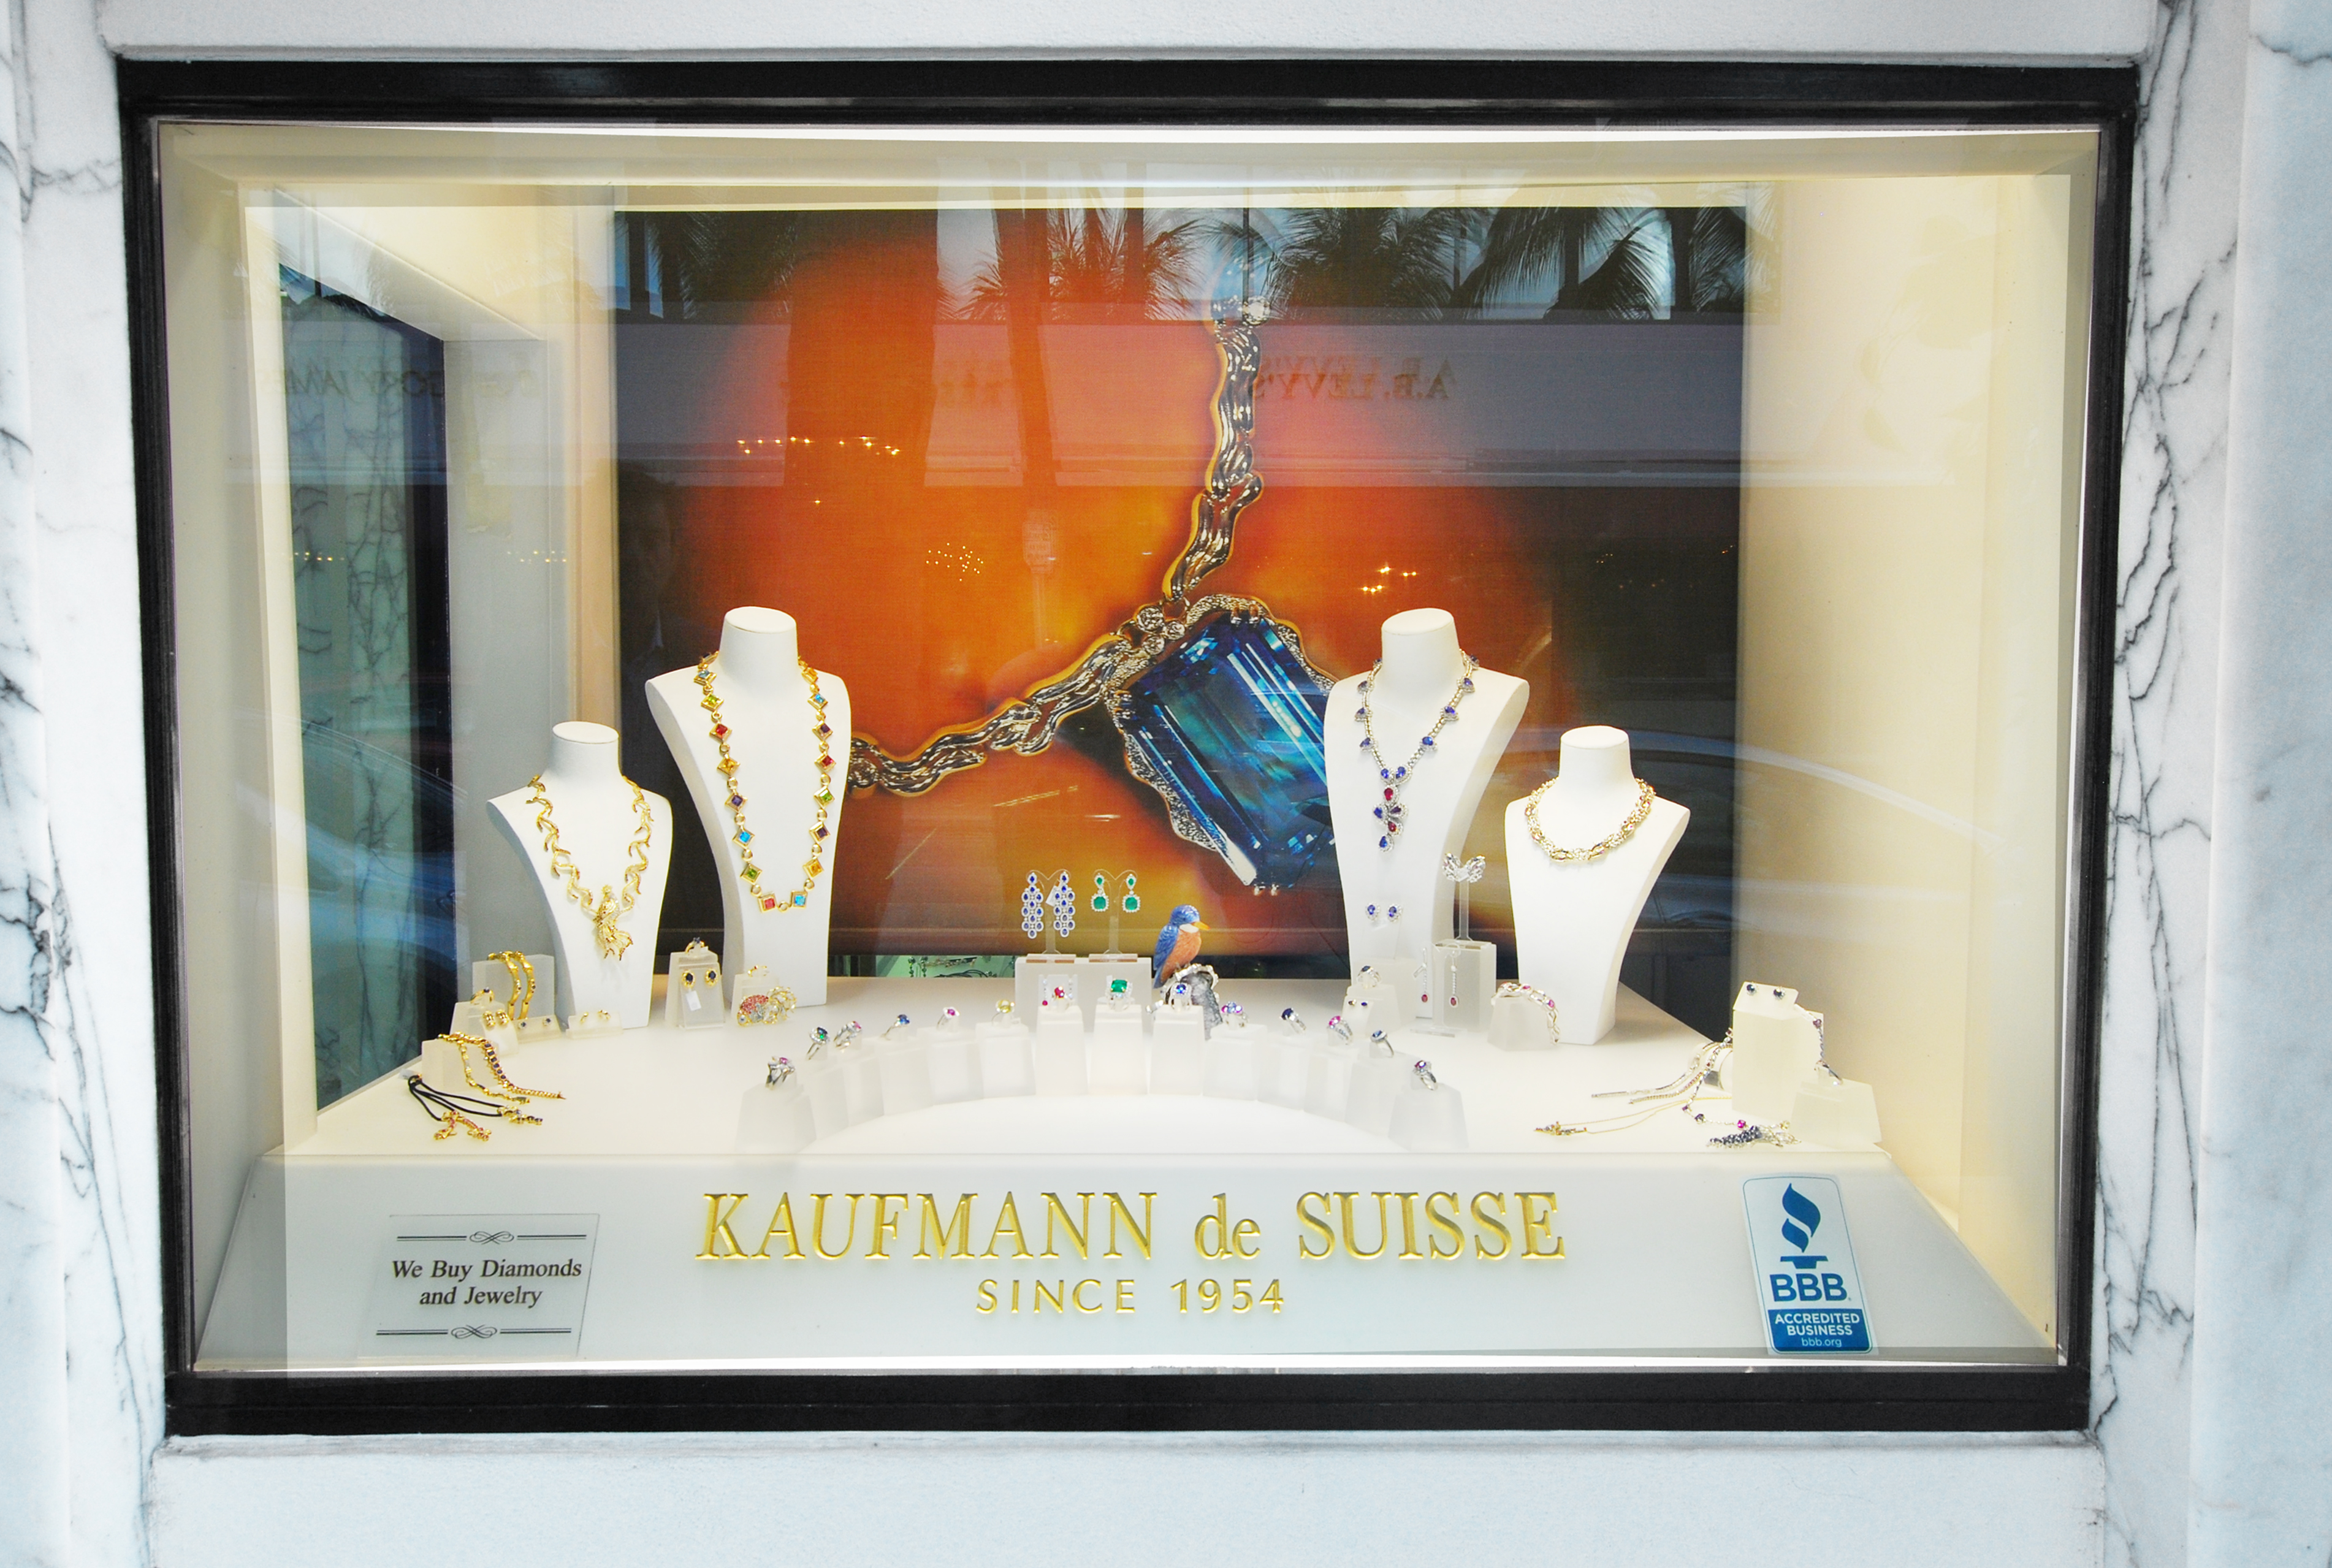 Kaufmann de Suisse Jewelry Designers, 210 Worth Ave., Palm Beach